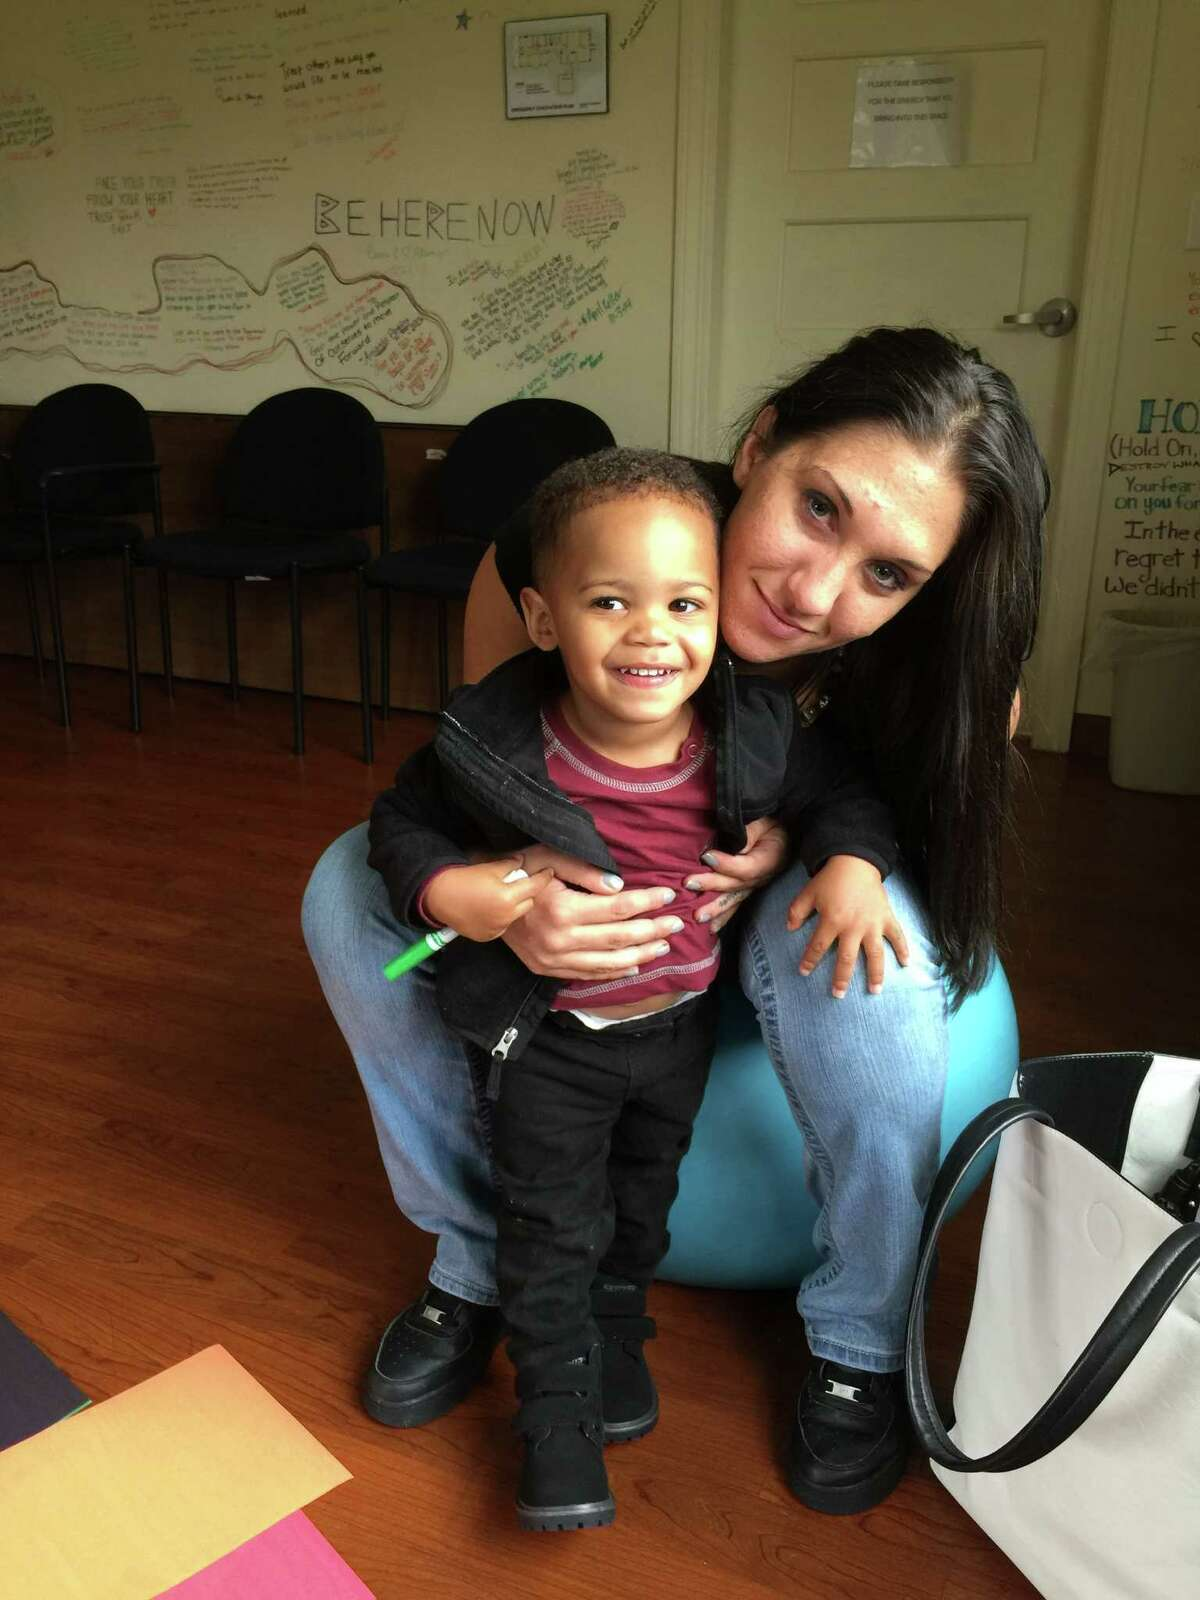 Jayden and Monika Spearman during a recent visit at The Next Step. (Provided)